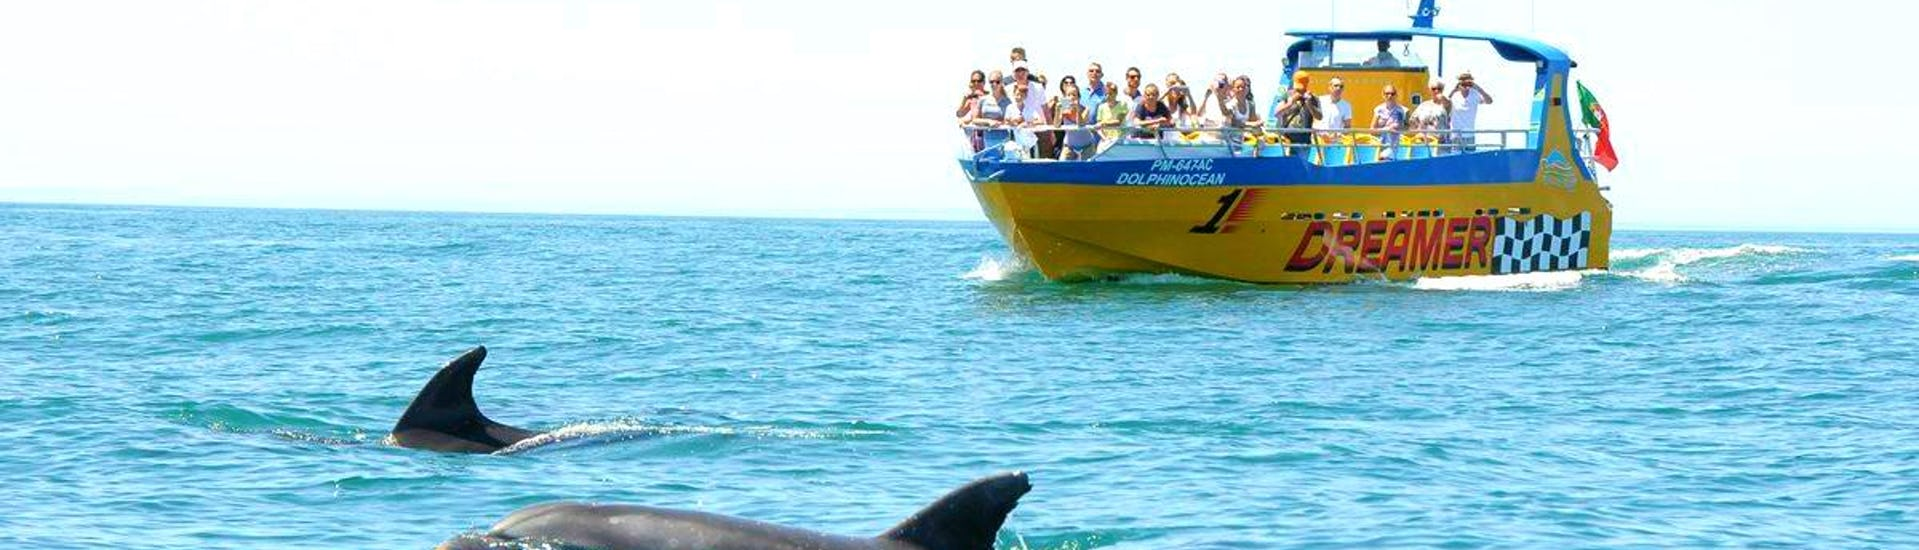 """A group of vacationers enjoys the fascinating view of the dolphins jumping alongside their boat on their Boat Tour """"Caves & Dolphins on the Dreamer"""" off the beautiful coast of Albufeira together with the team from Dream Waves."""